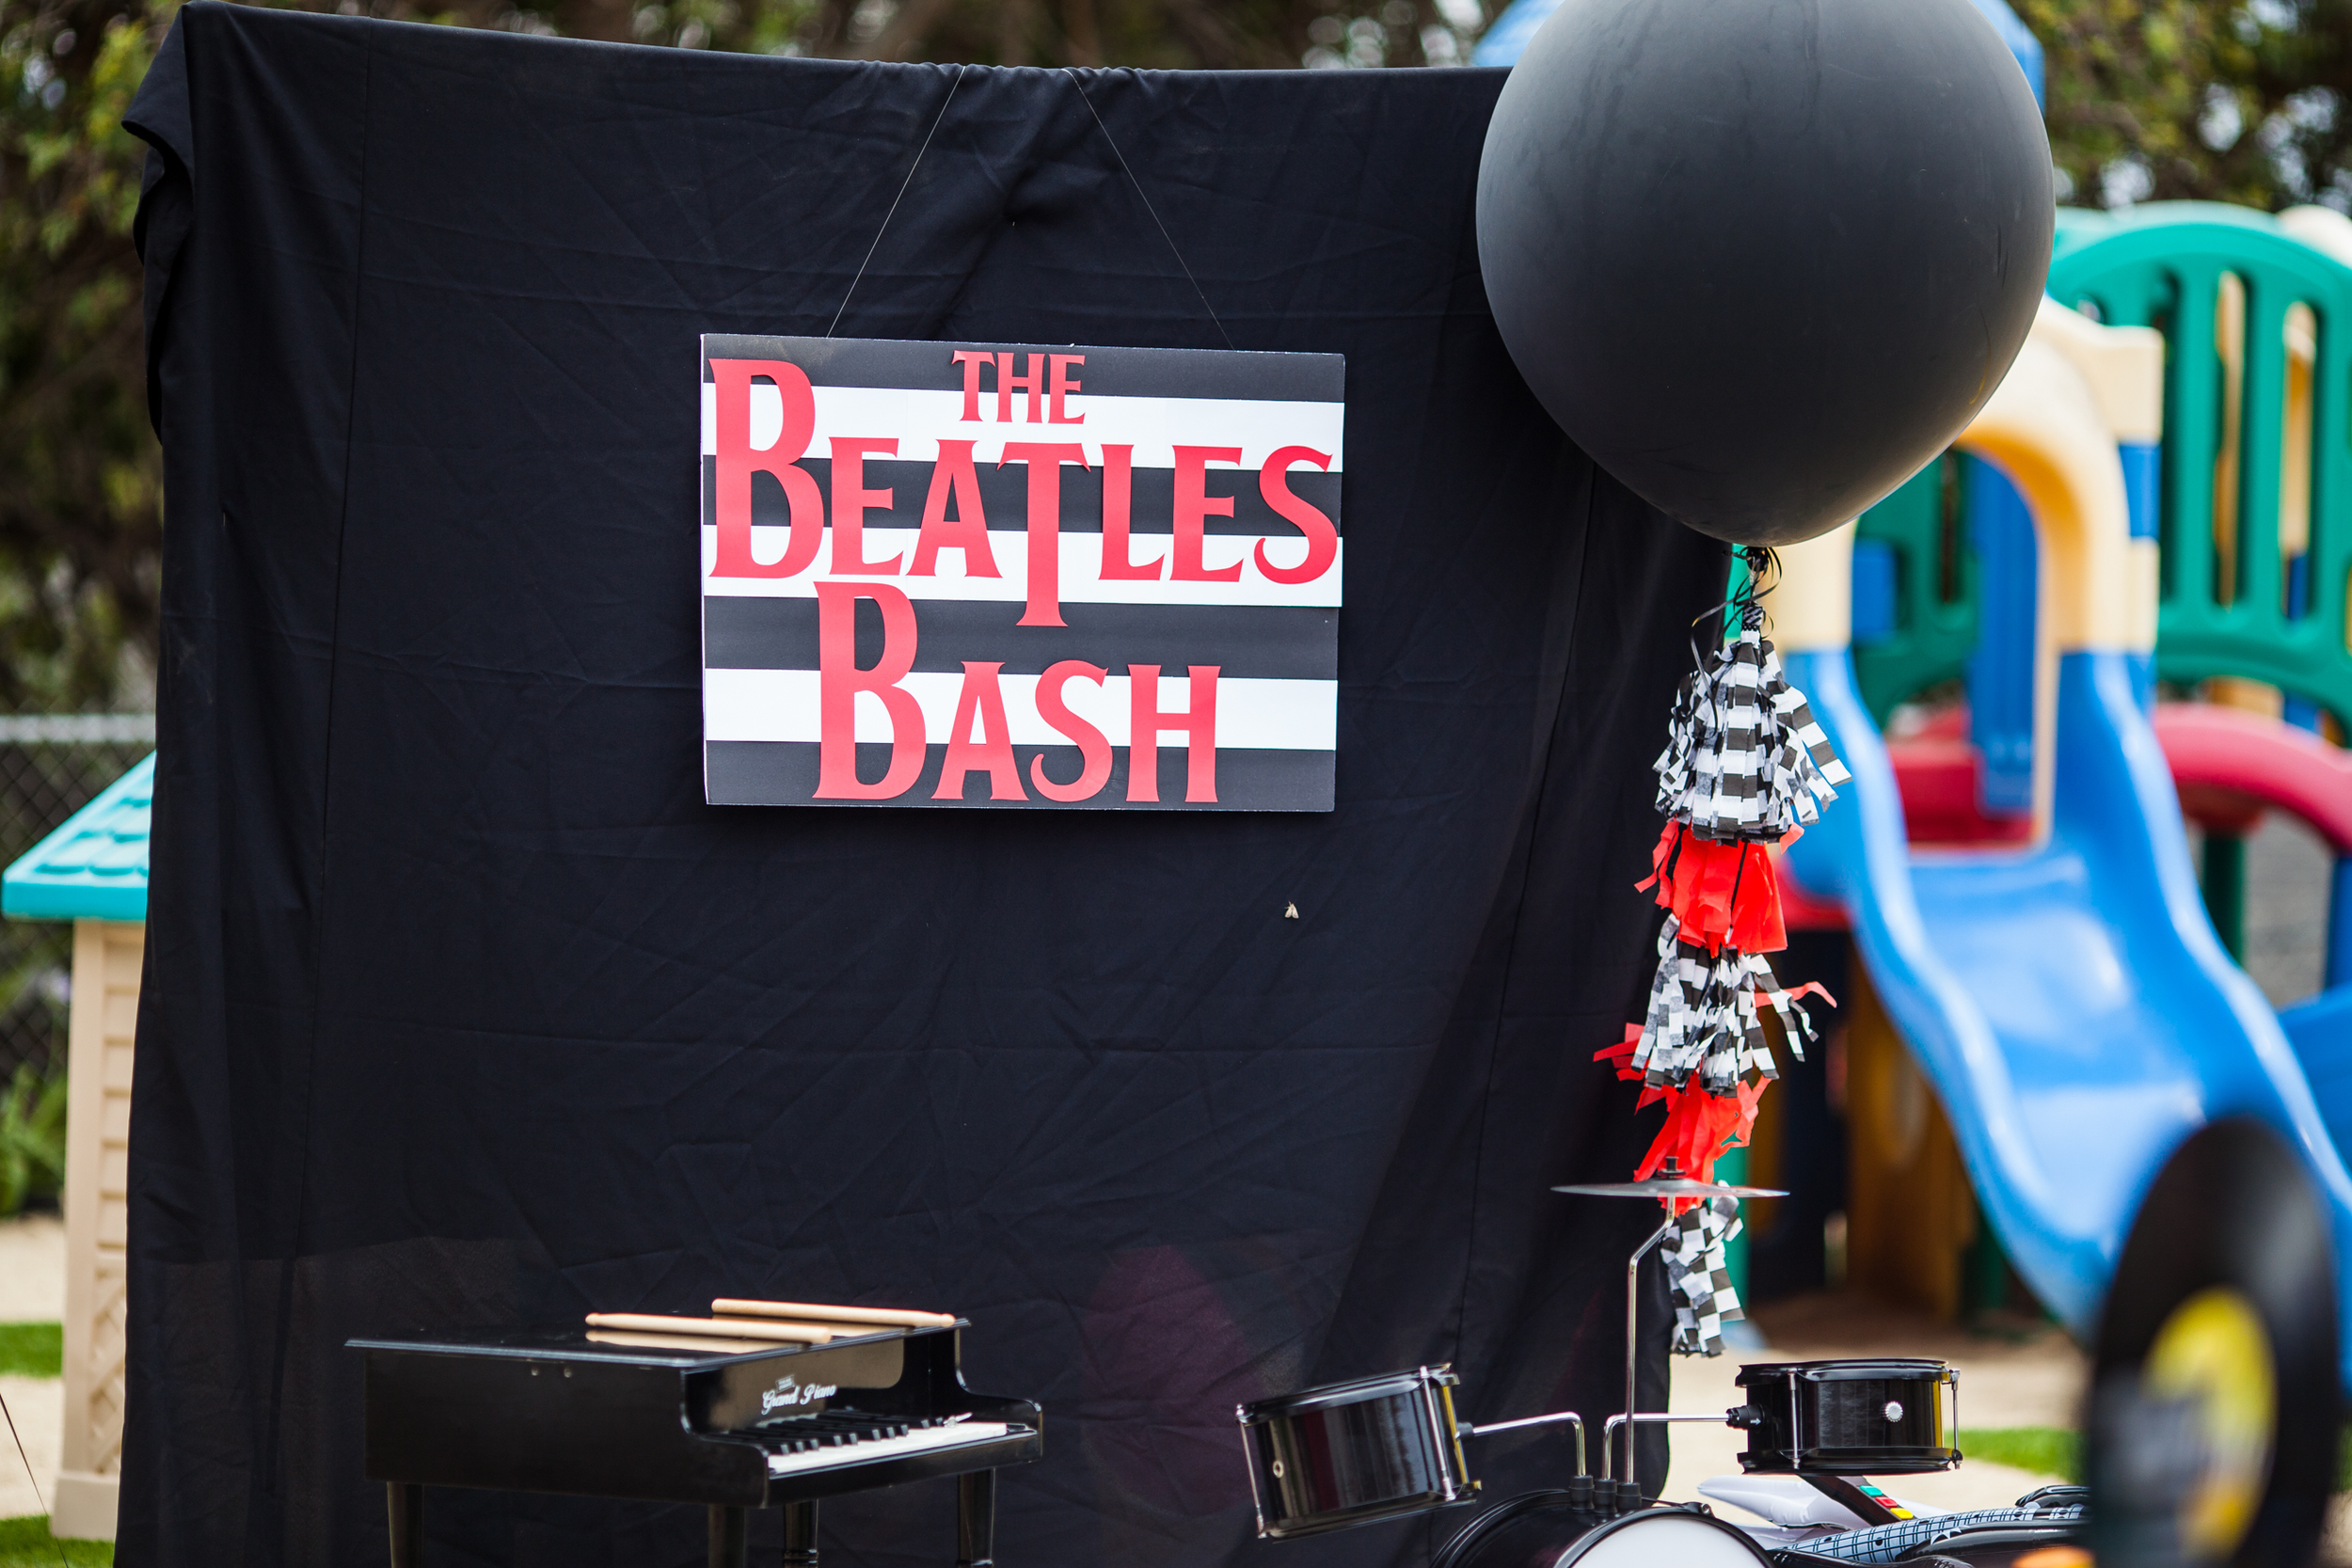 Beatles Bash stage set up by Down Emery Lane.